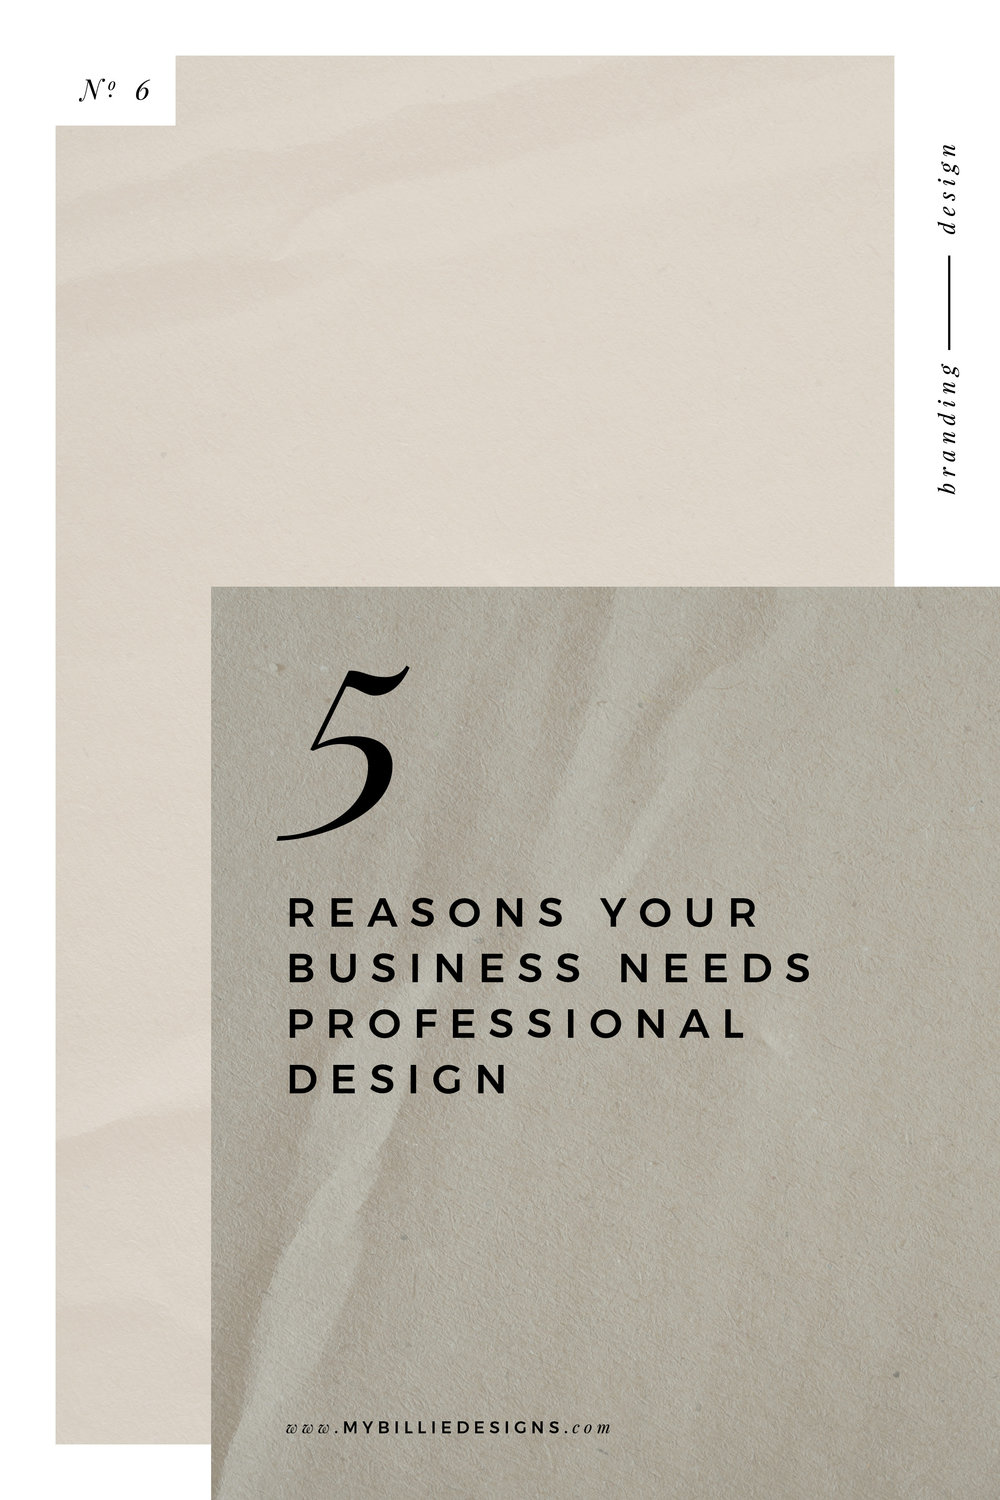 why my business needs professional design